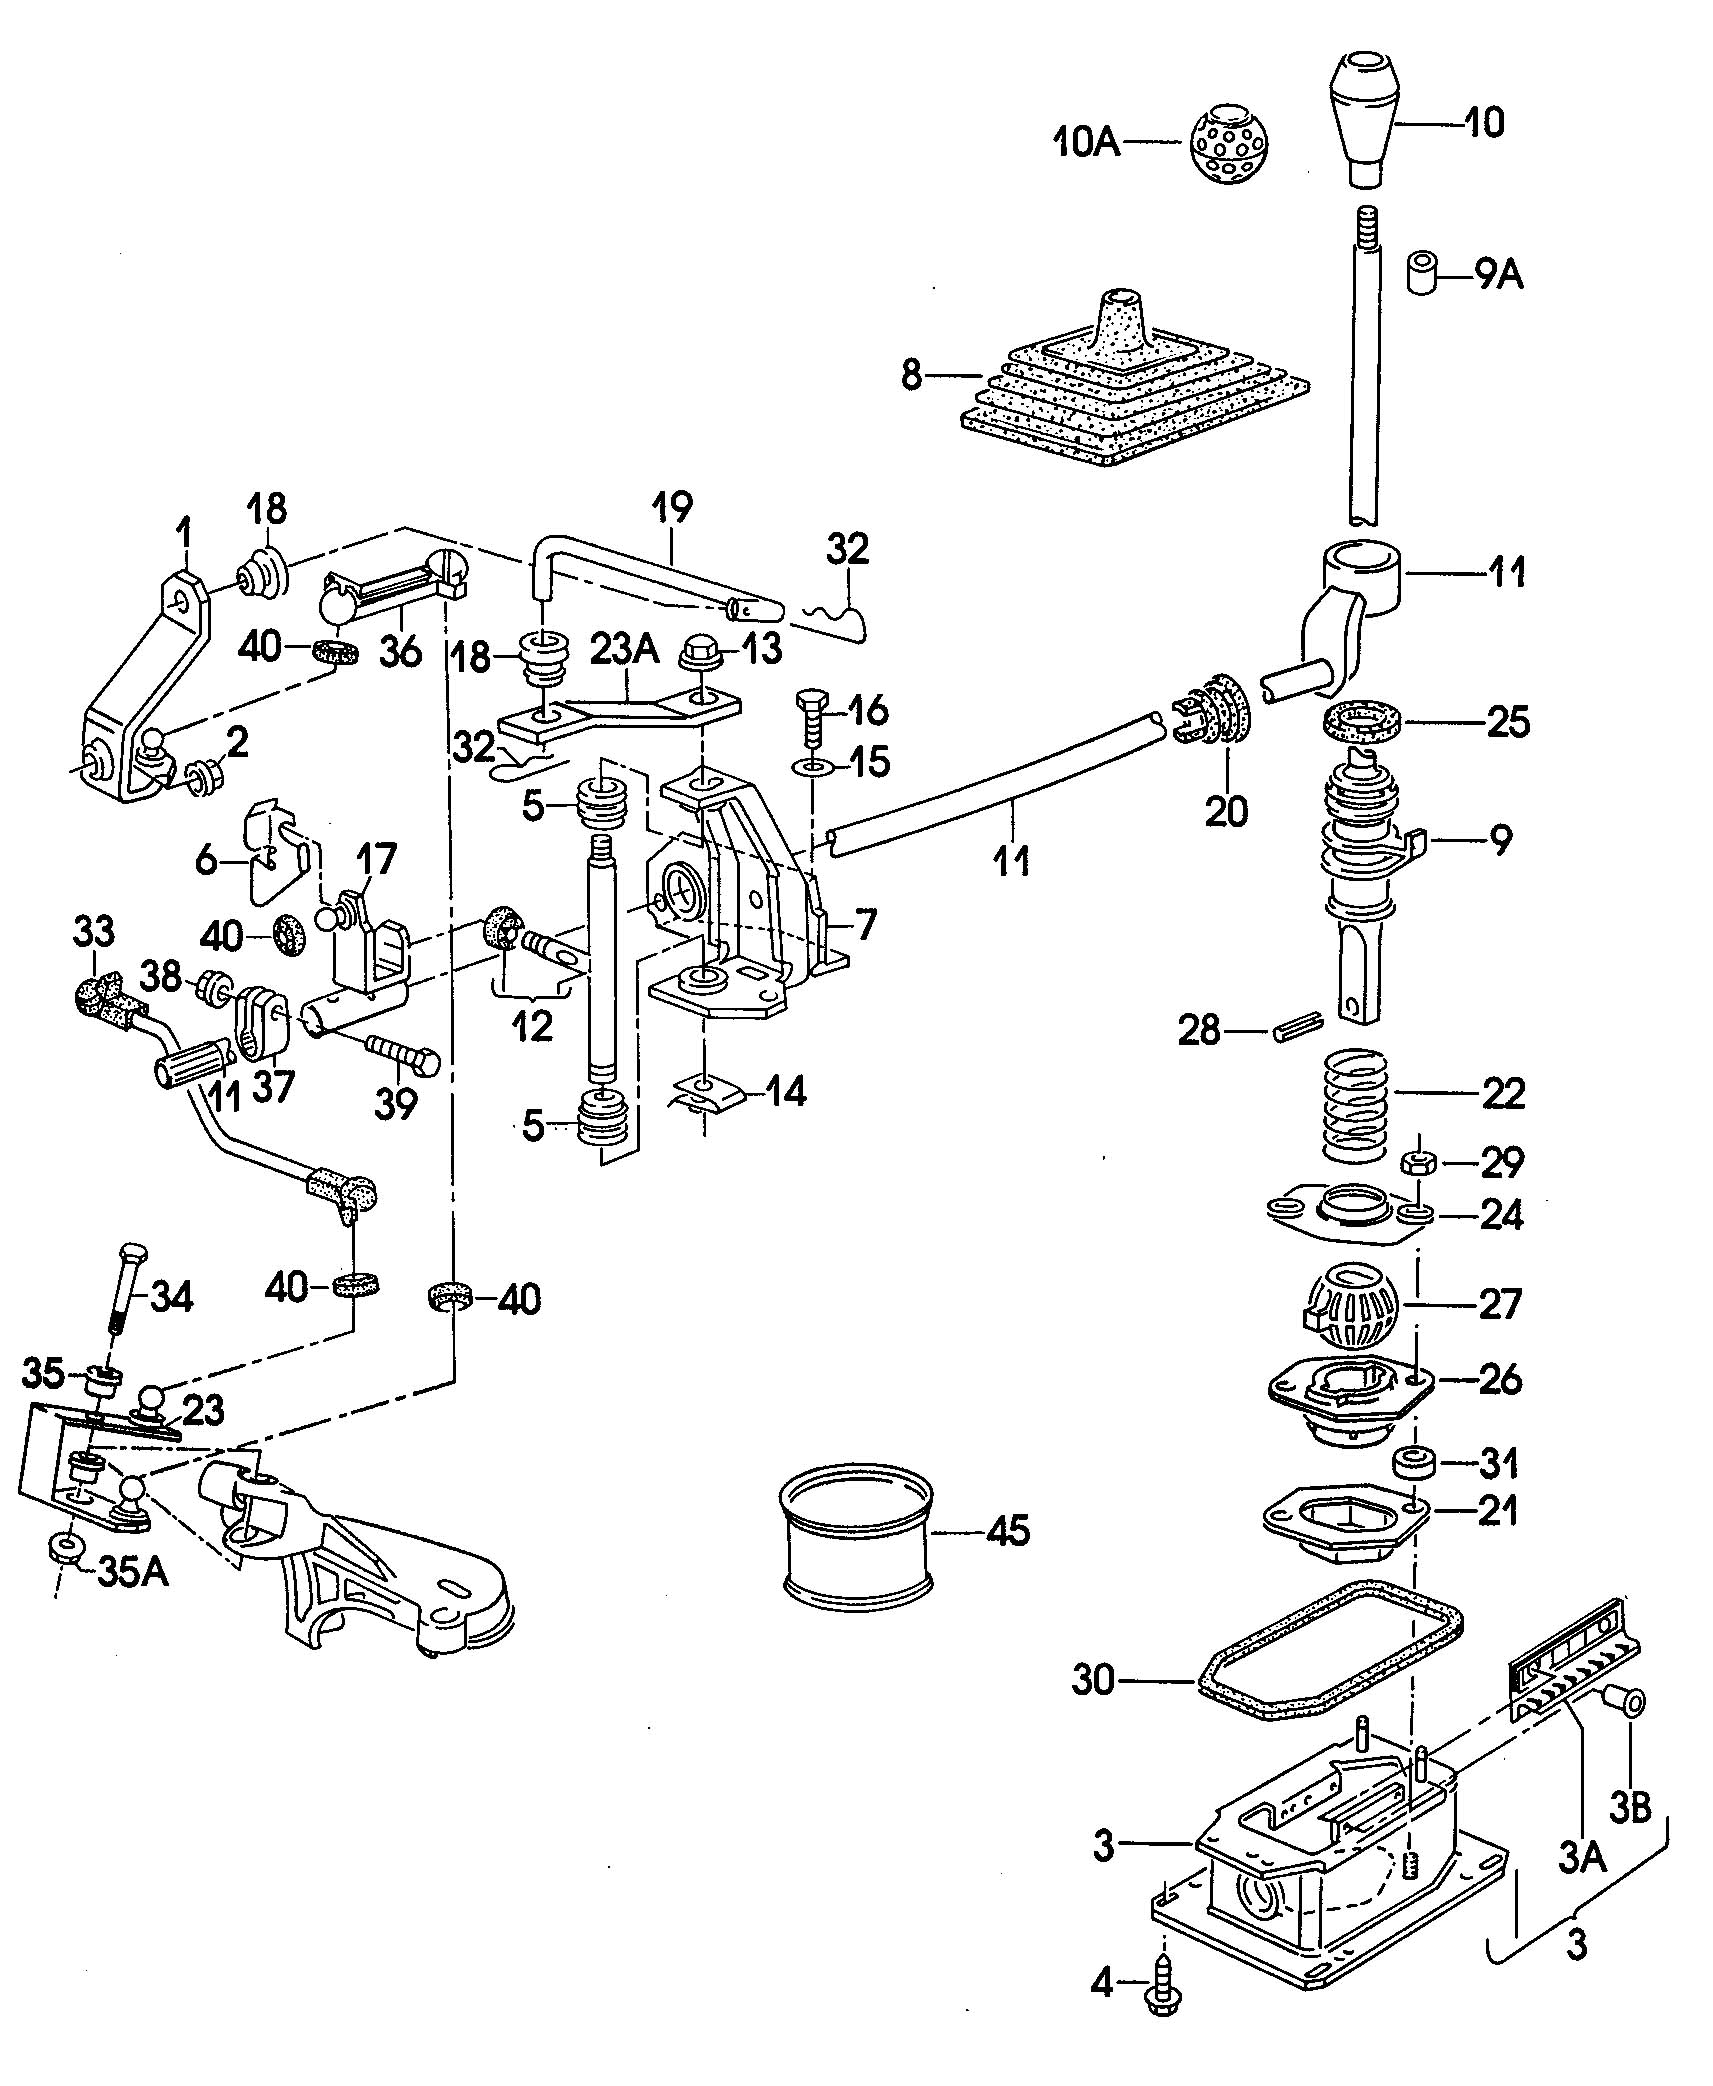 95 Vw Jetta Manual Transmission Parts Diagram